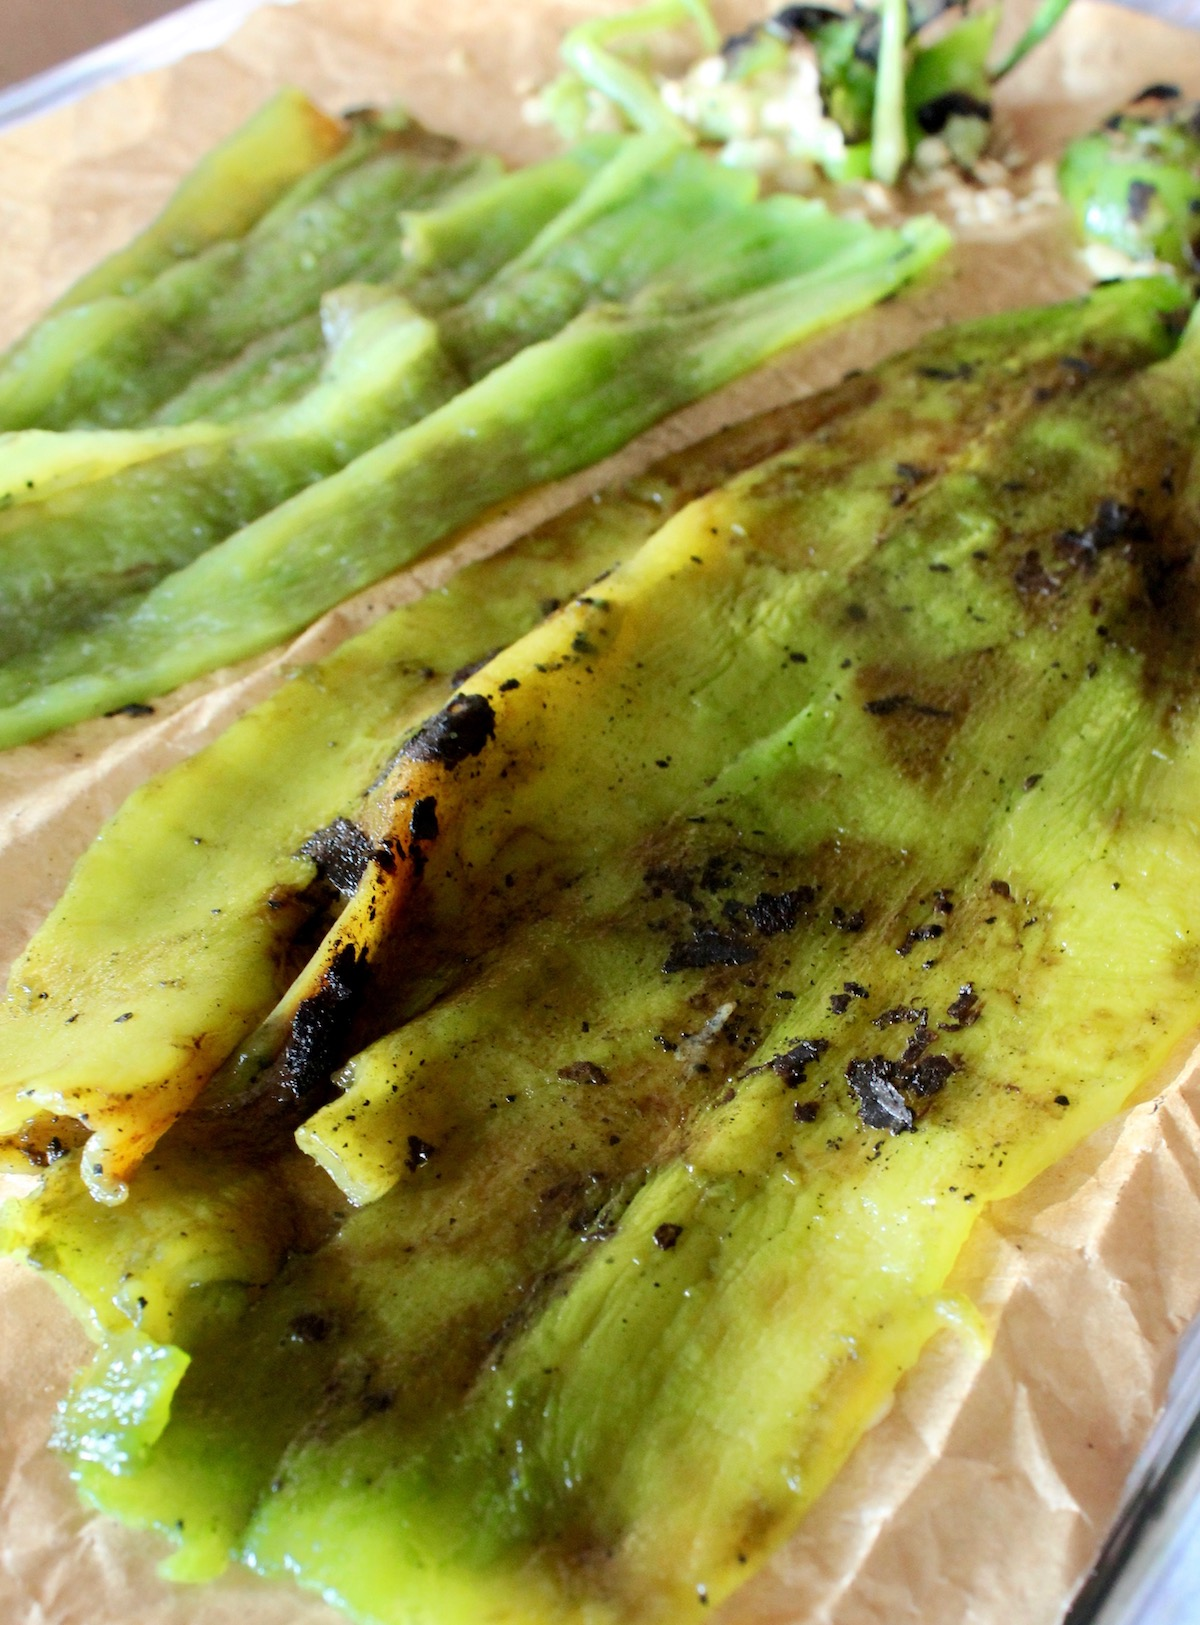 roasted, peeled and seeded hatch green chiles on parchment